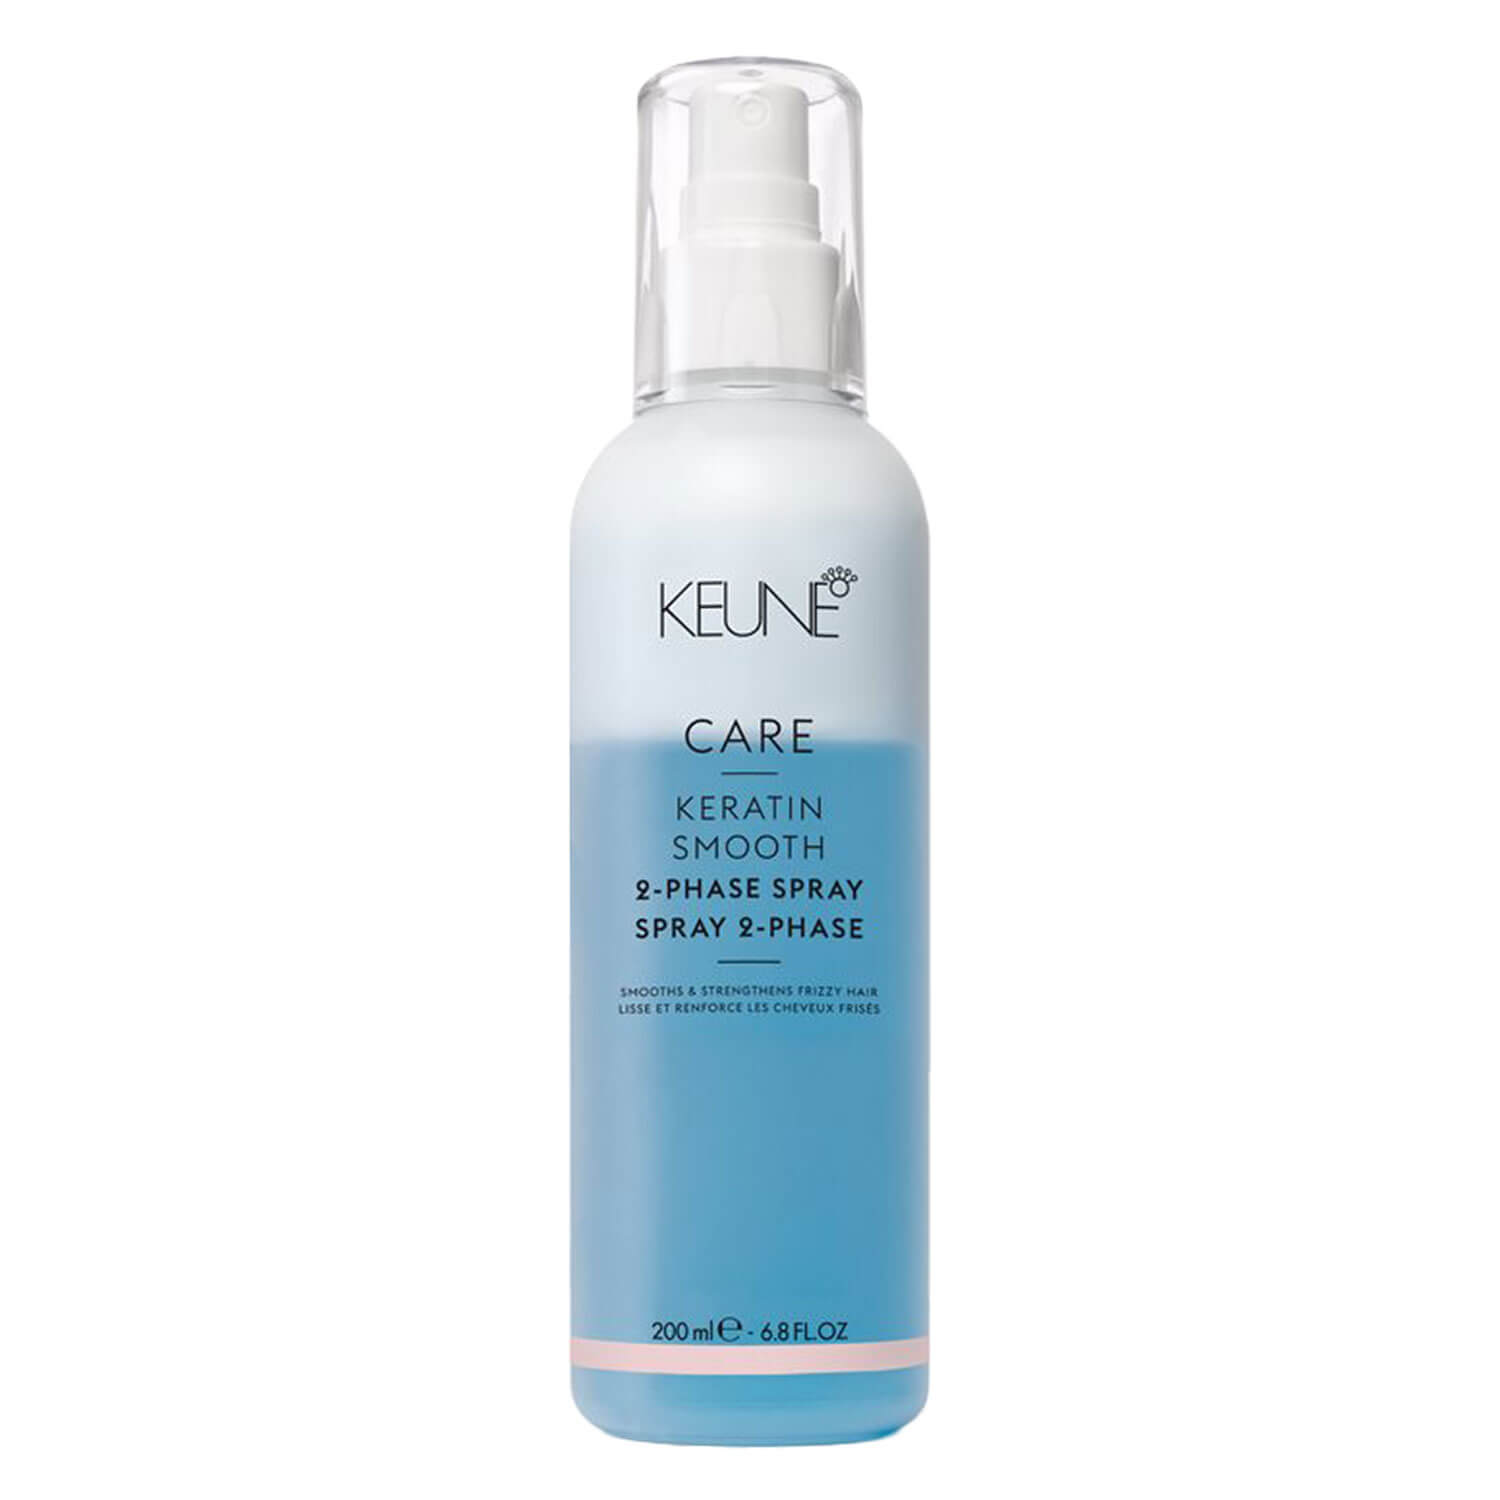 Keune Care - Keratin Smooth 2-Phase Spray